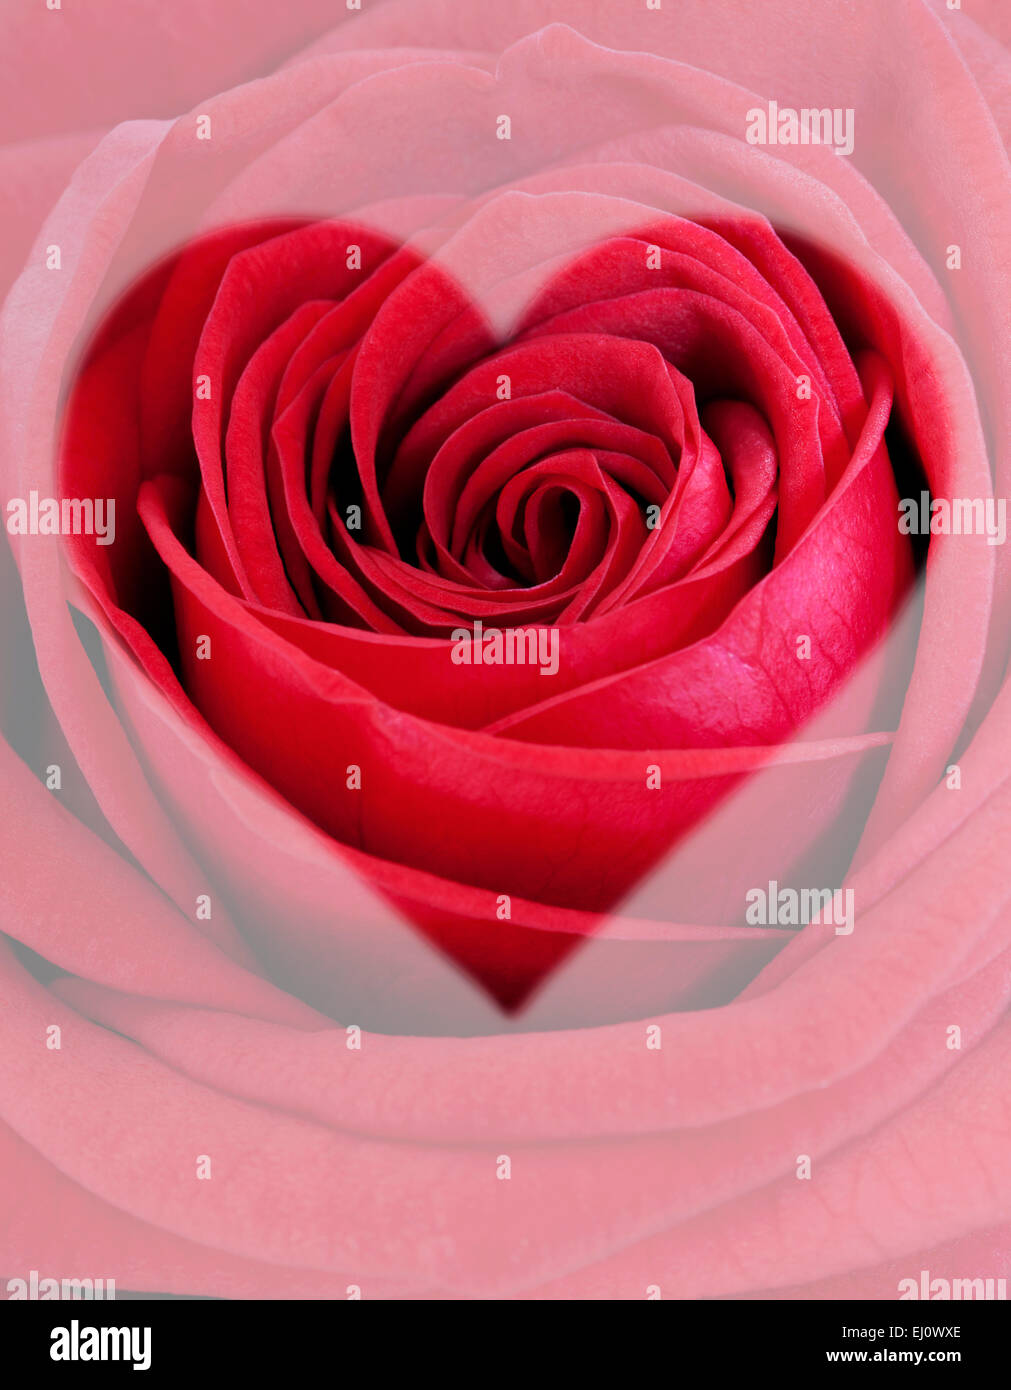 Red rose heart shape - Stock Image